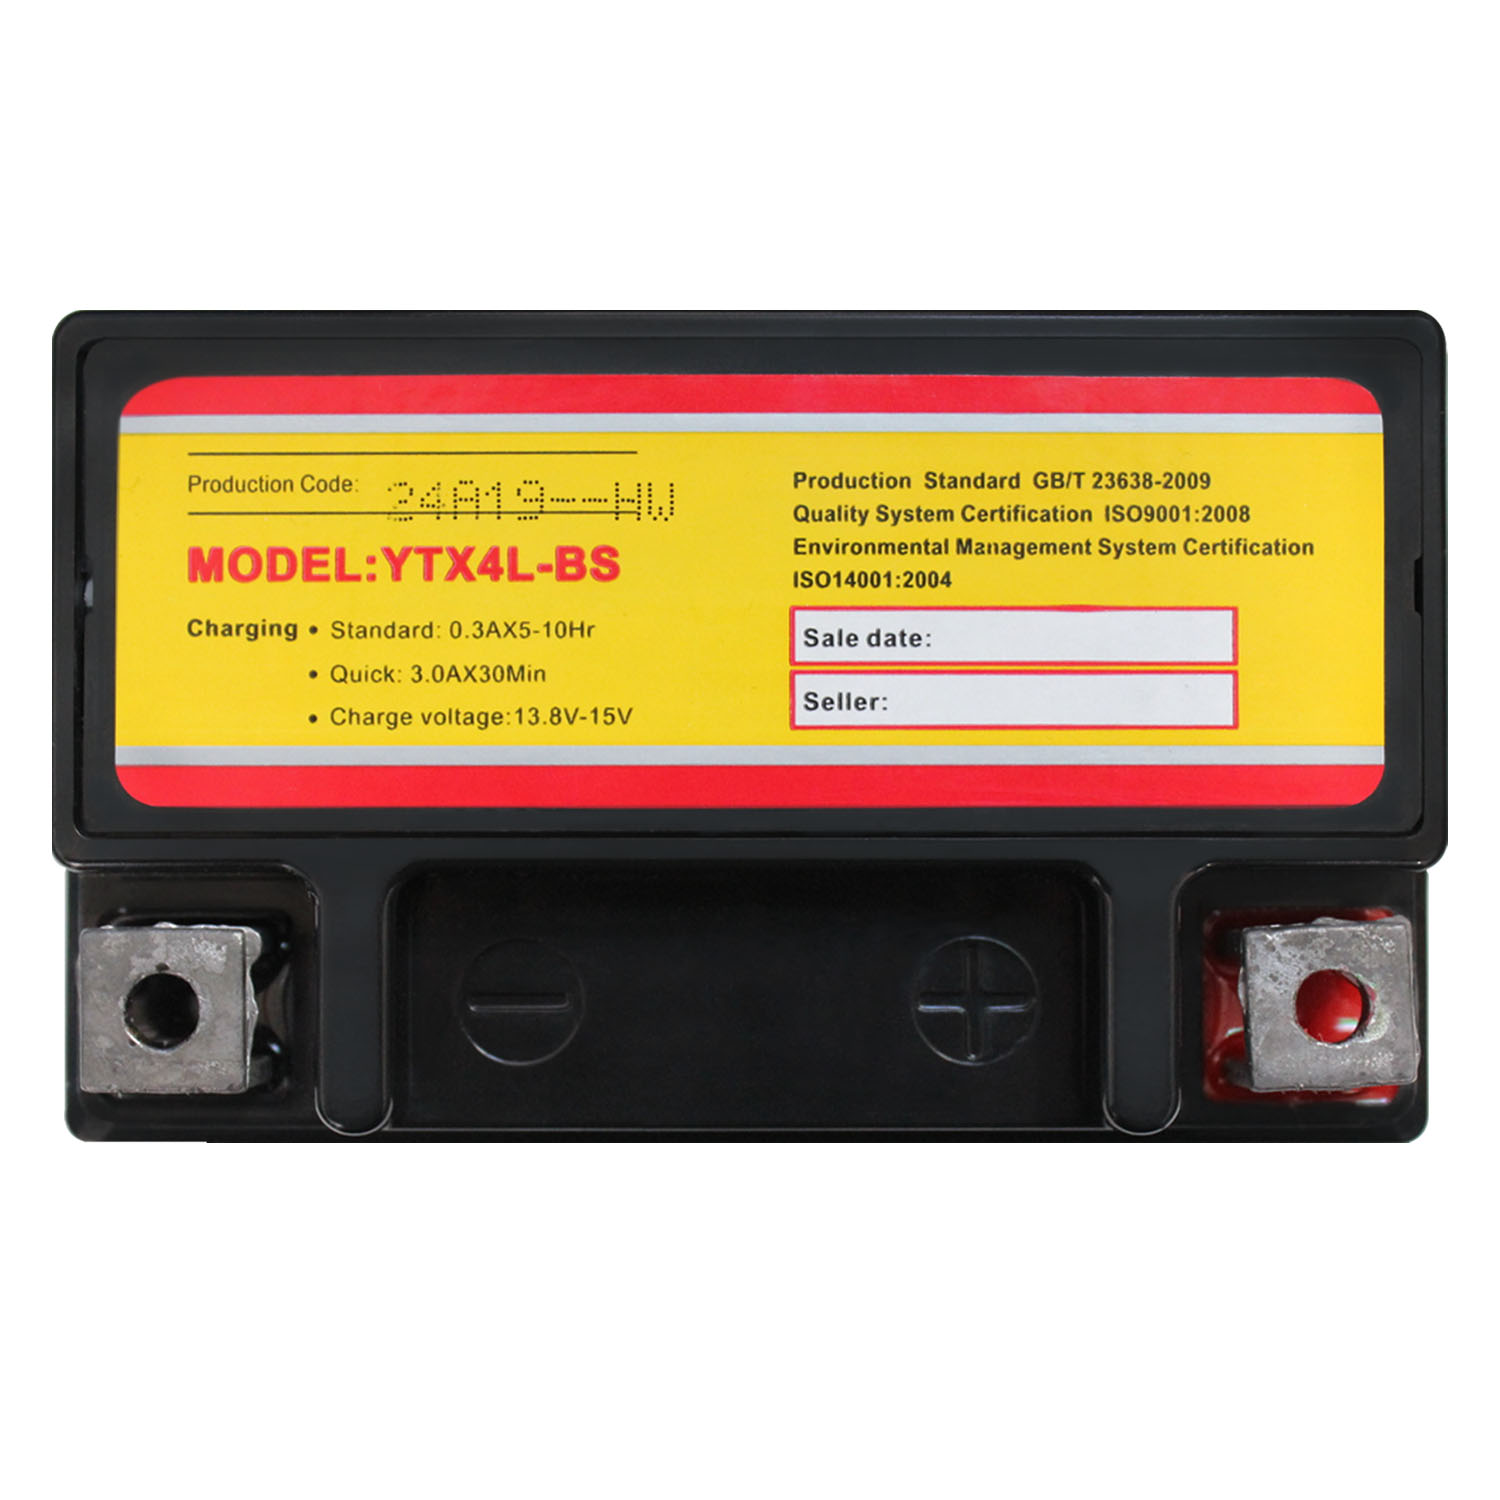 YTX4L-BS 12 VOLT 3AH MOTORCYCLE BATTERY REPLACES YTX4L-BS - 2 PACK - 4